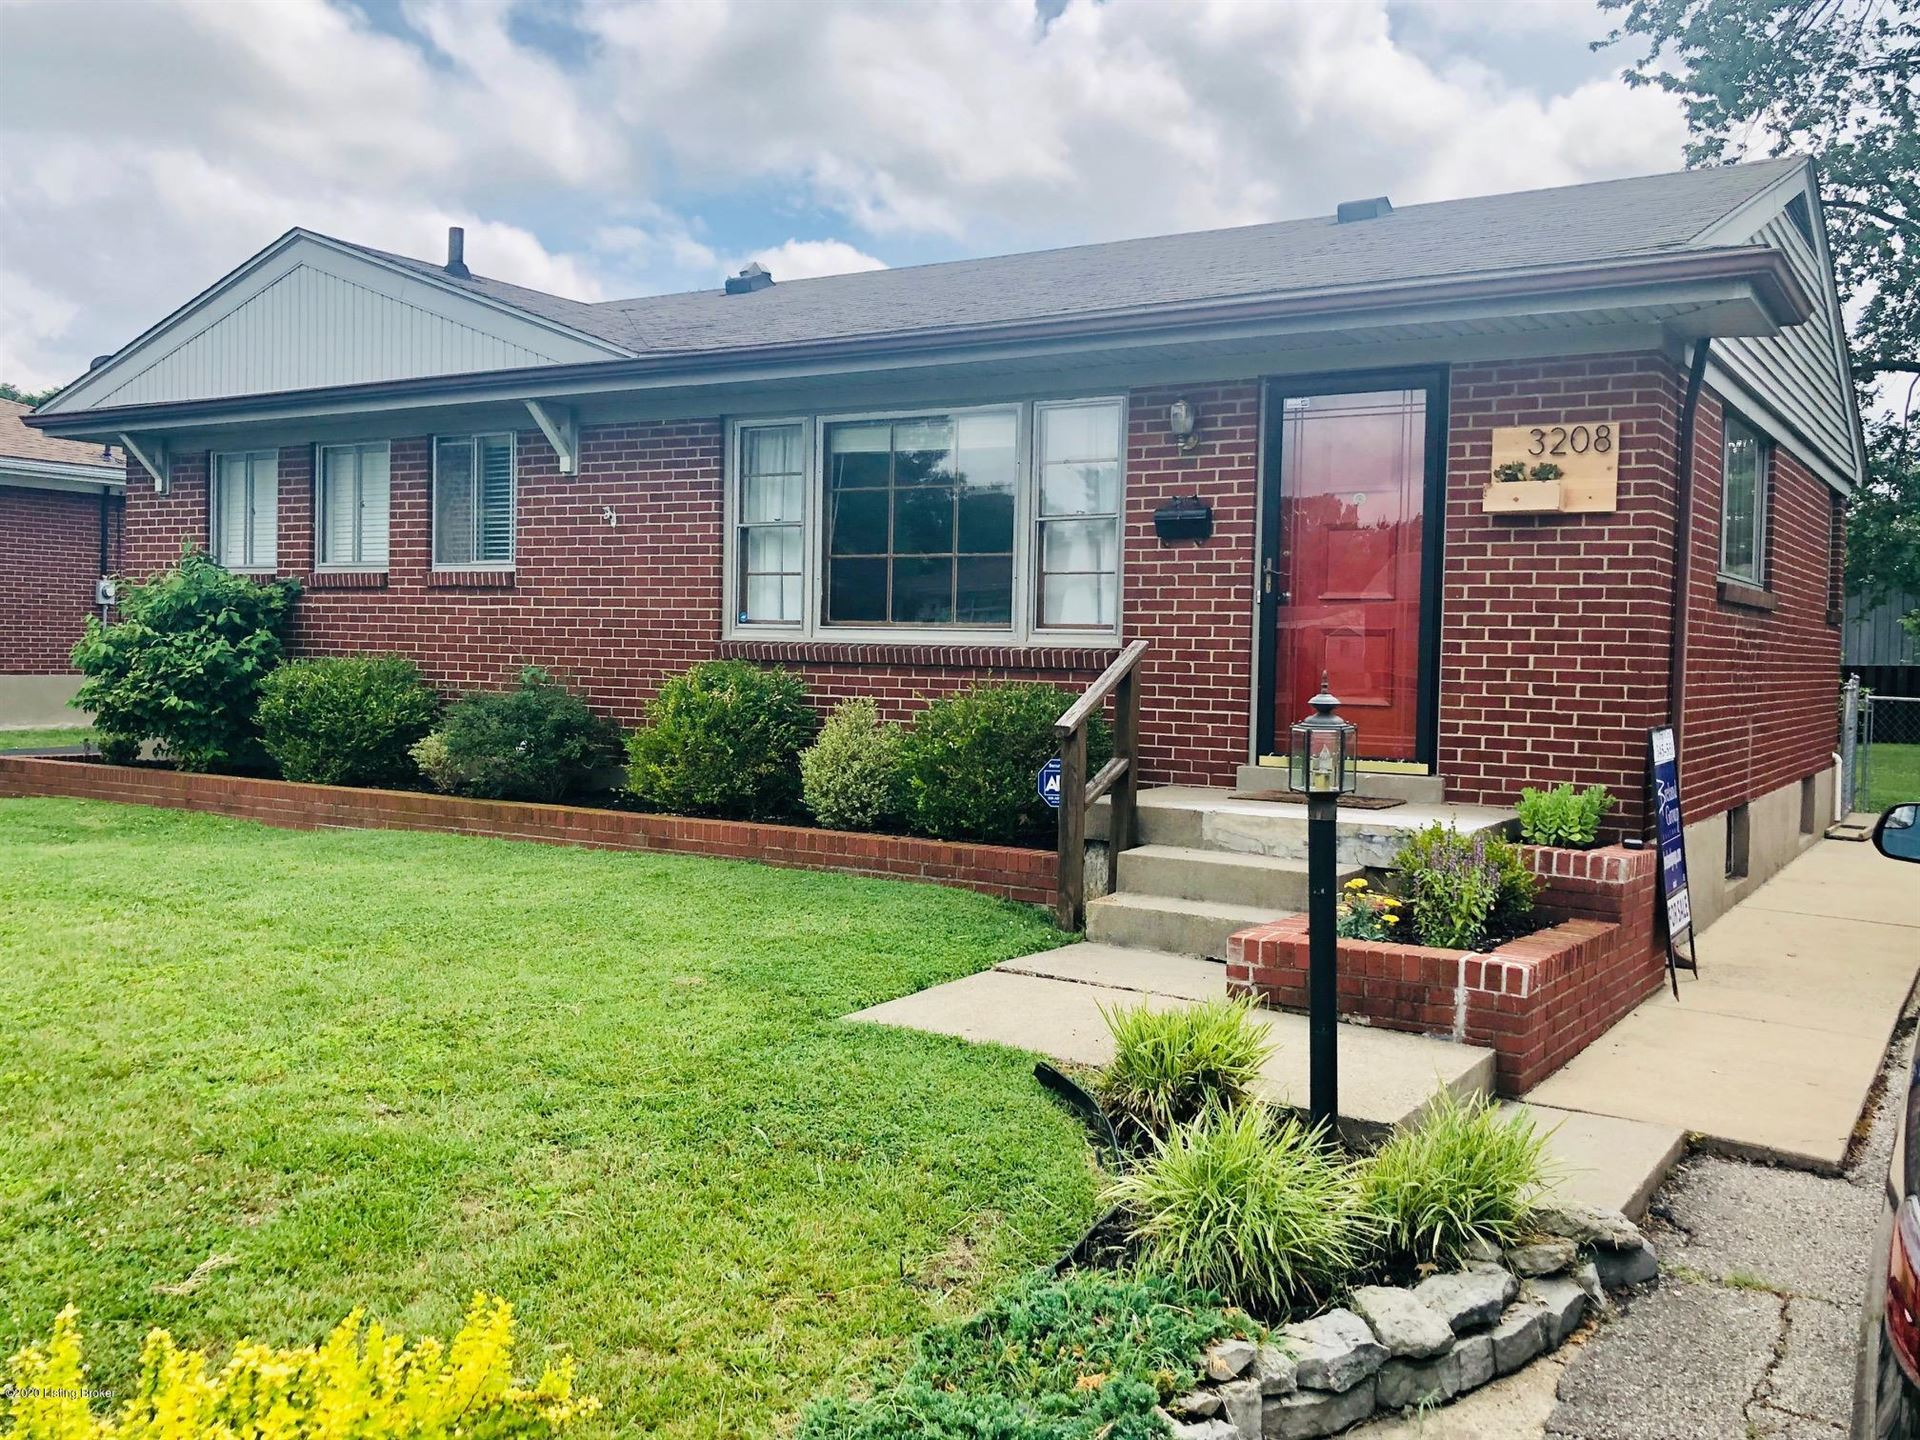 Property Image Of 3208 Furman Blvd In Louisville, Ky